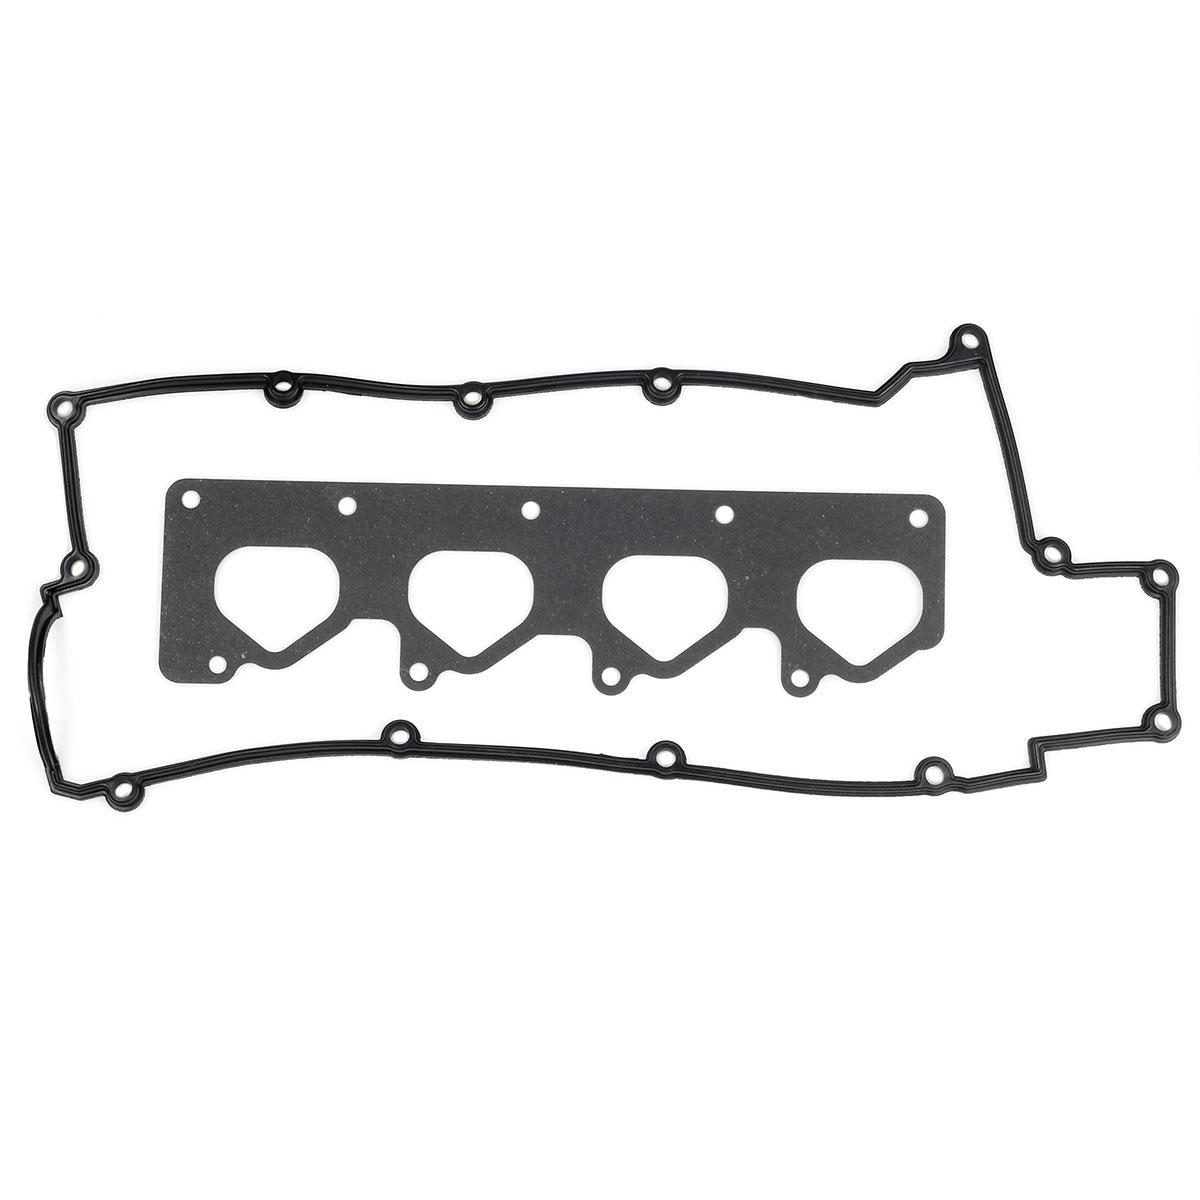 Head Gasket Set Head Bolts For 01 10 Hyundai Elantra Kia